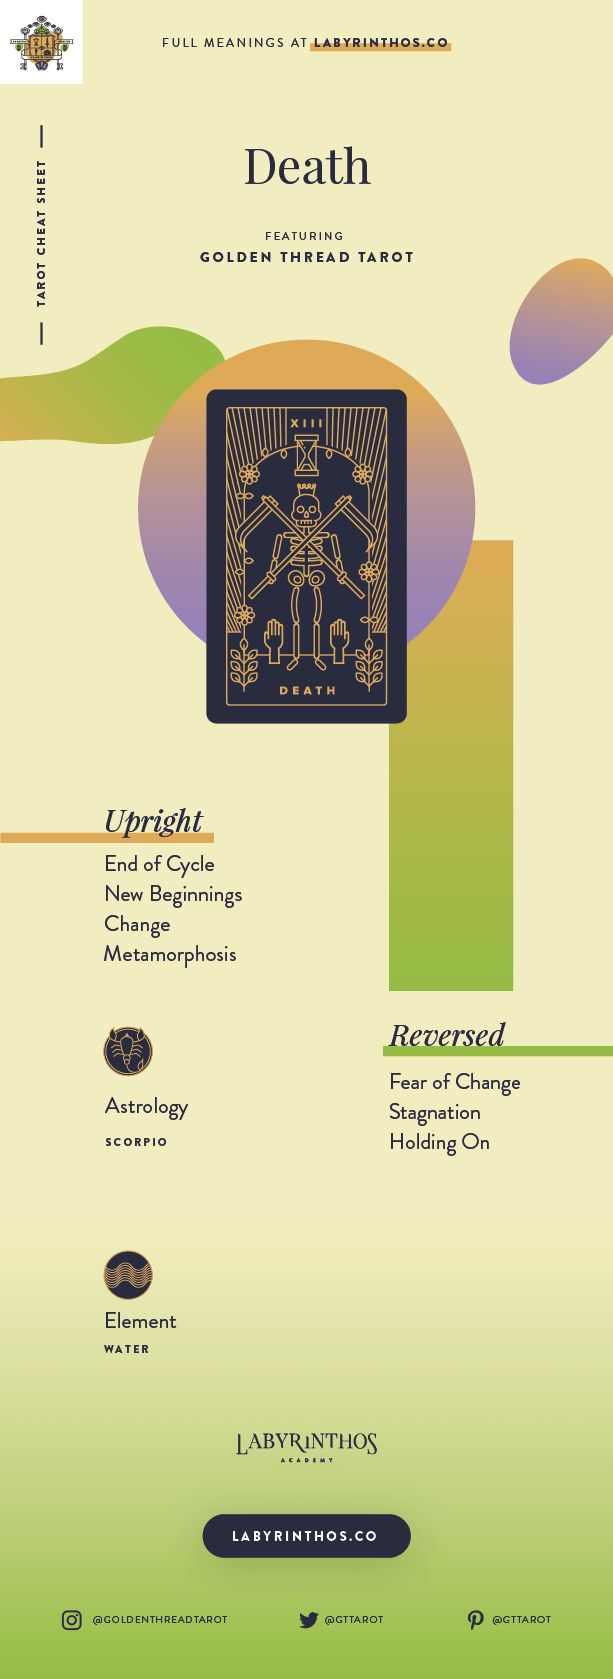 Death Meaning - Tarot Card Meanings Cheat Sheet. Art from Golden Thread Tarot.